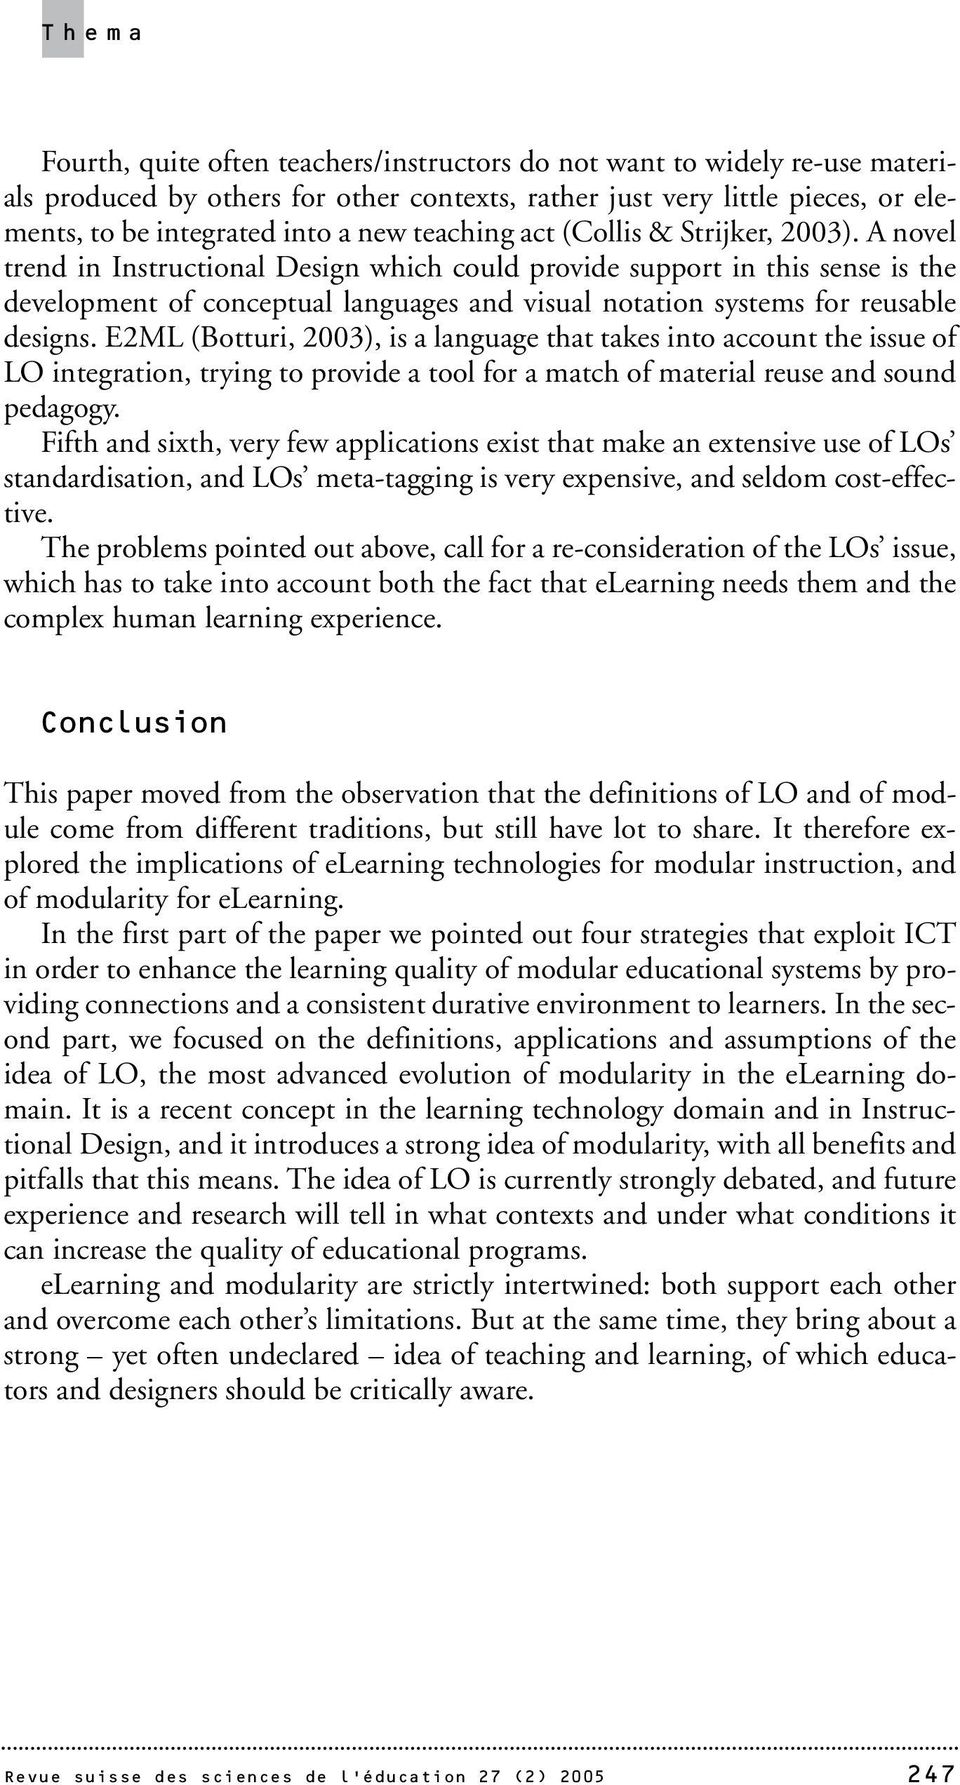 A novel trend in Instructional Design which could provide support in this sense is the development of conceptual languages and visual notation systems for reusable designs.